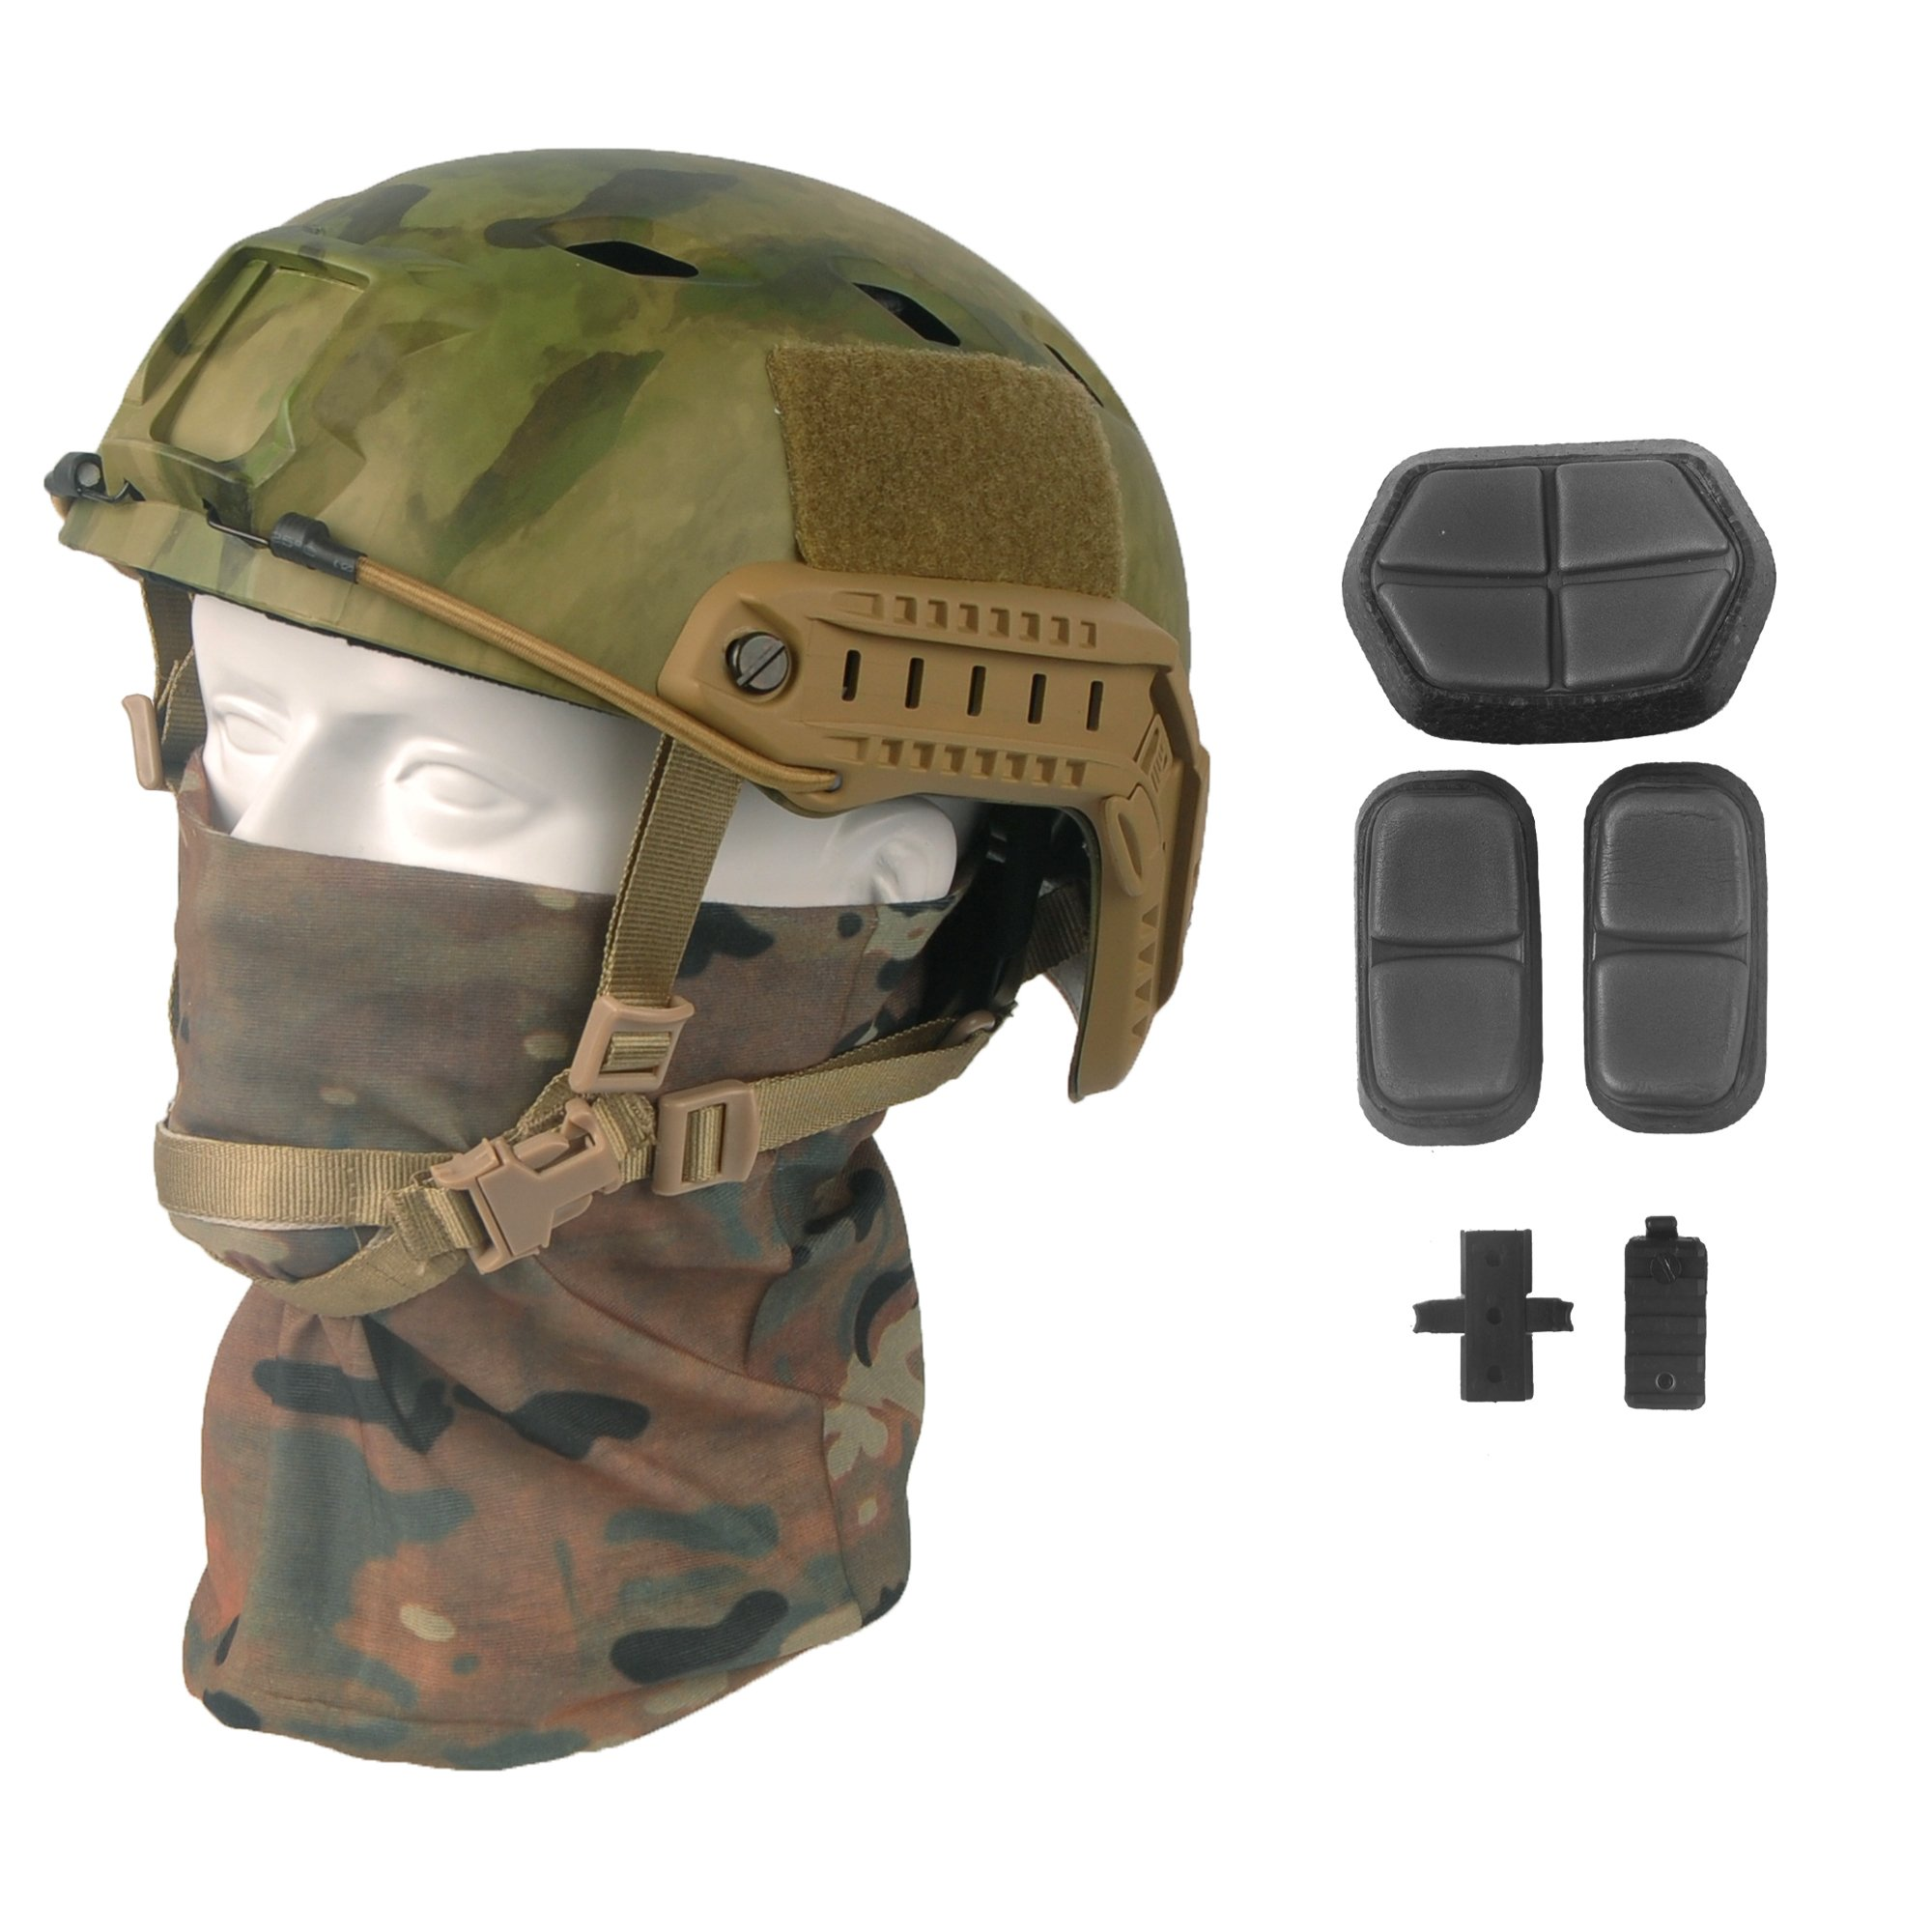 LOOGU Fast BJ Base Jump Military Helmet with 12-in-1 Headwear(at-FG) by LOOGU